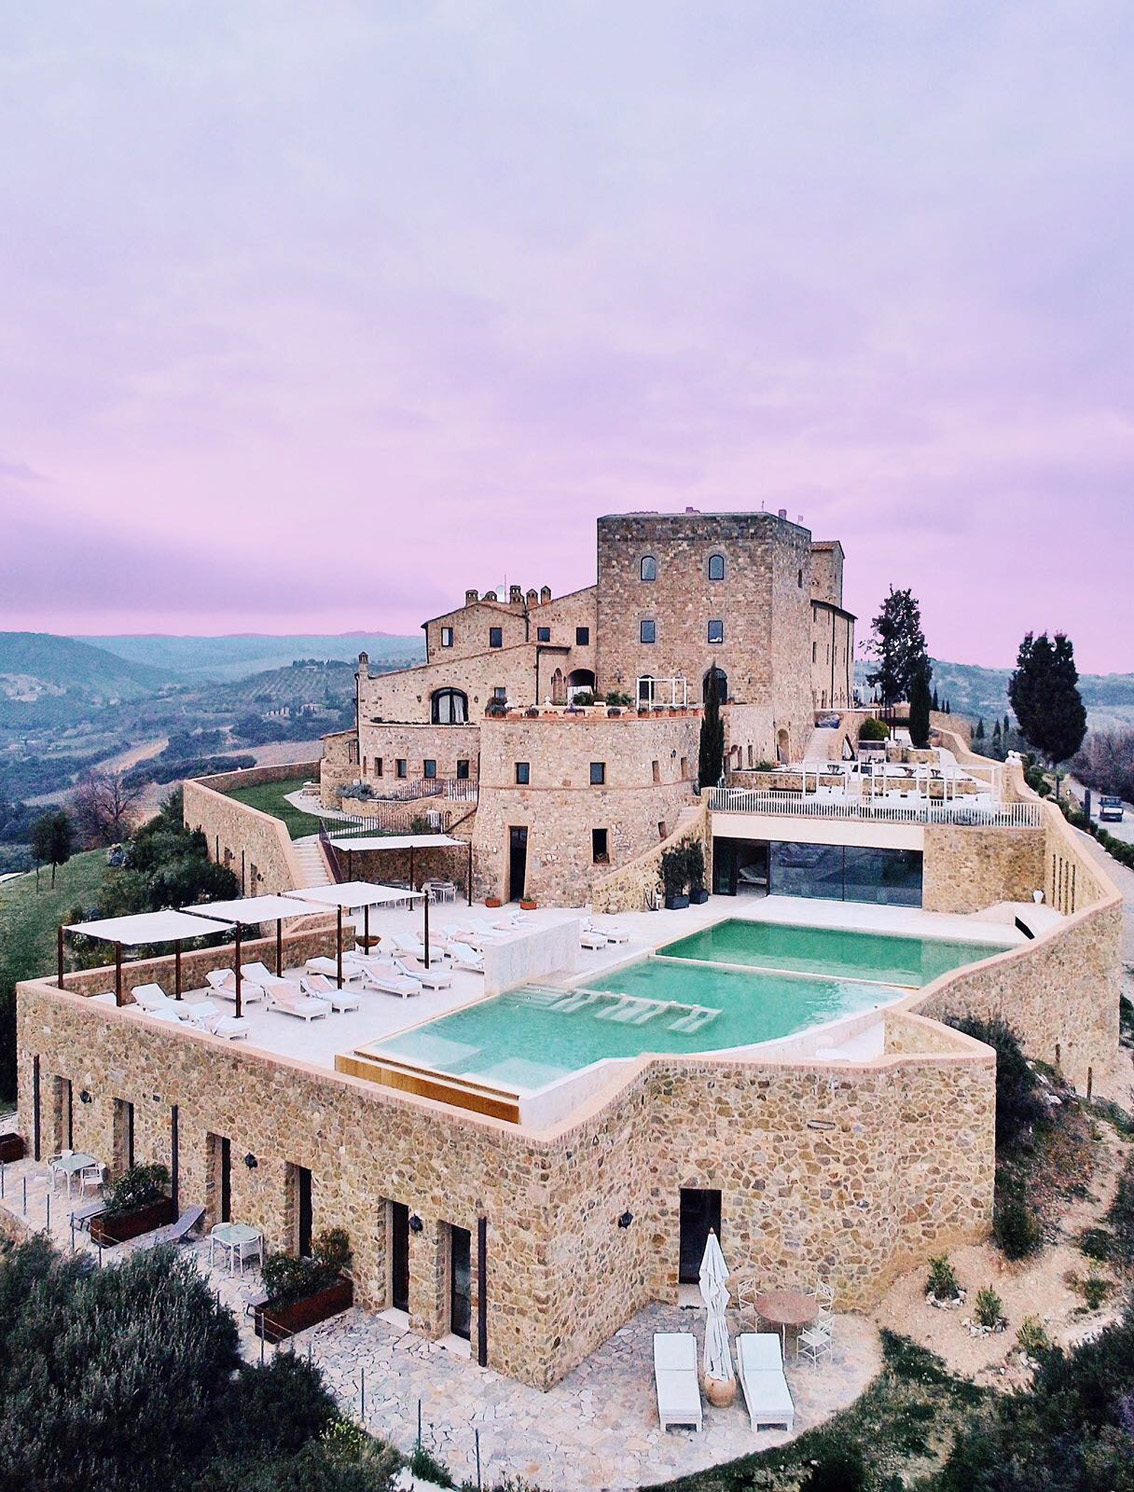 23-1 Dreamy weekend in a Tuscany ancient castle: Castello di Velona.